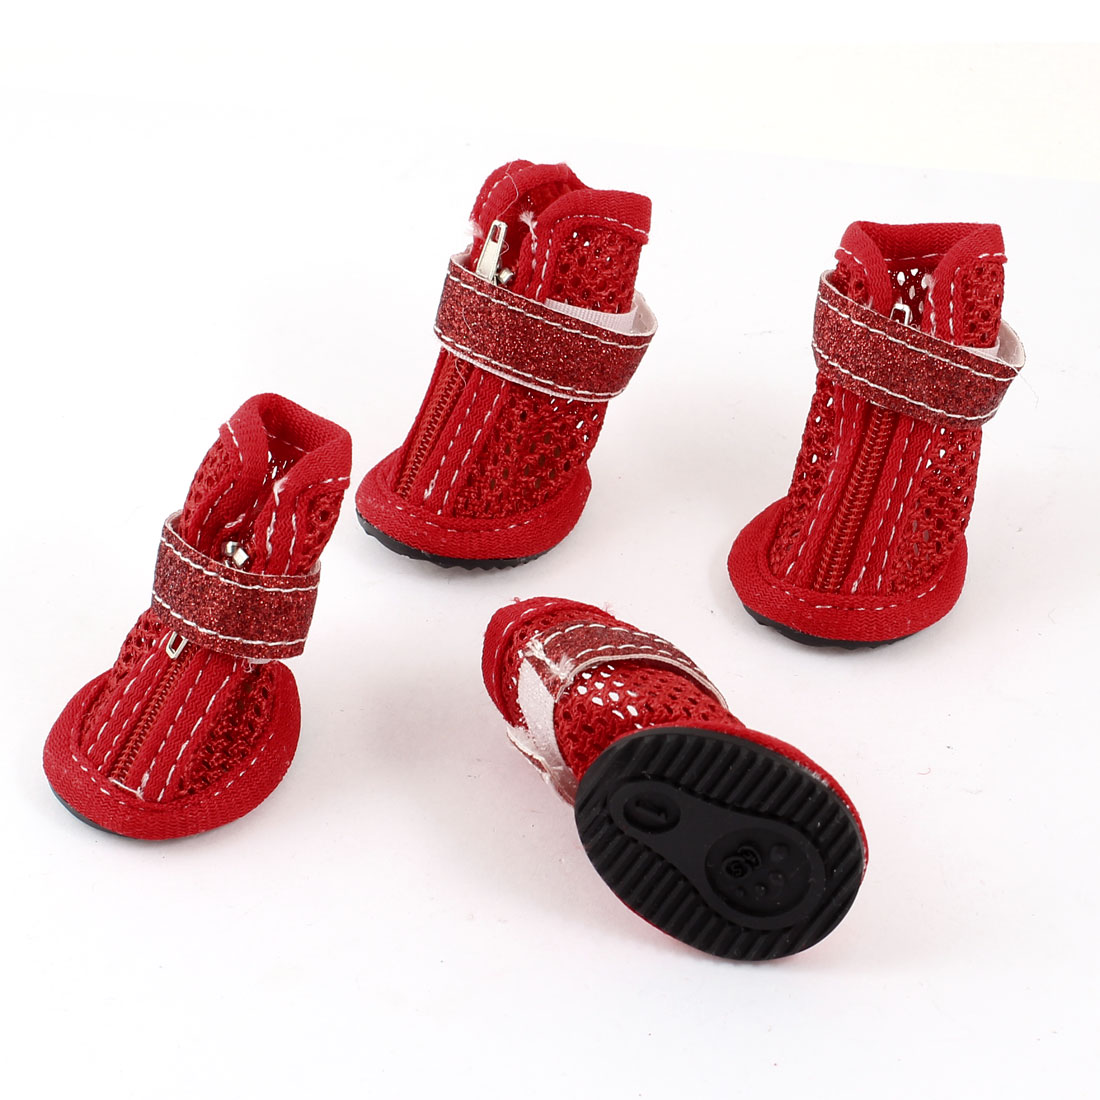 2 Pair Hook Loop Closure Pet Yorkie Doggie Mesh Shoes Boots Booties Red Size XXS